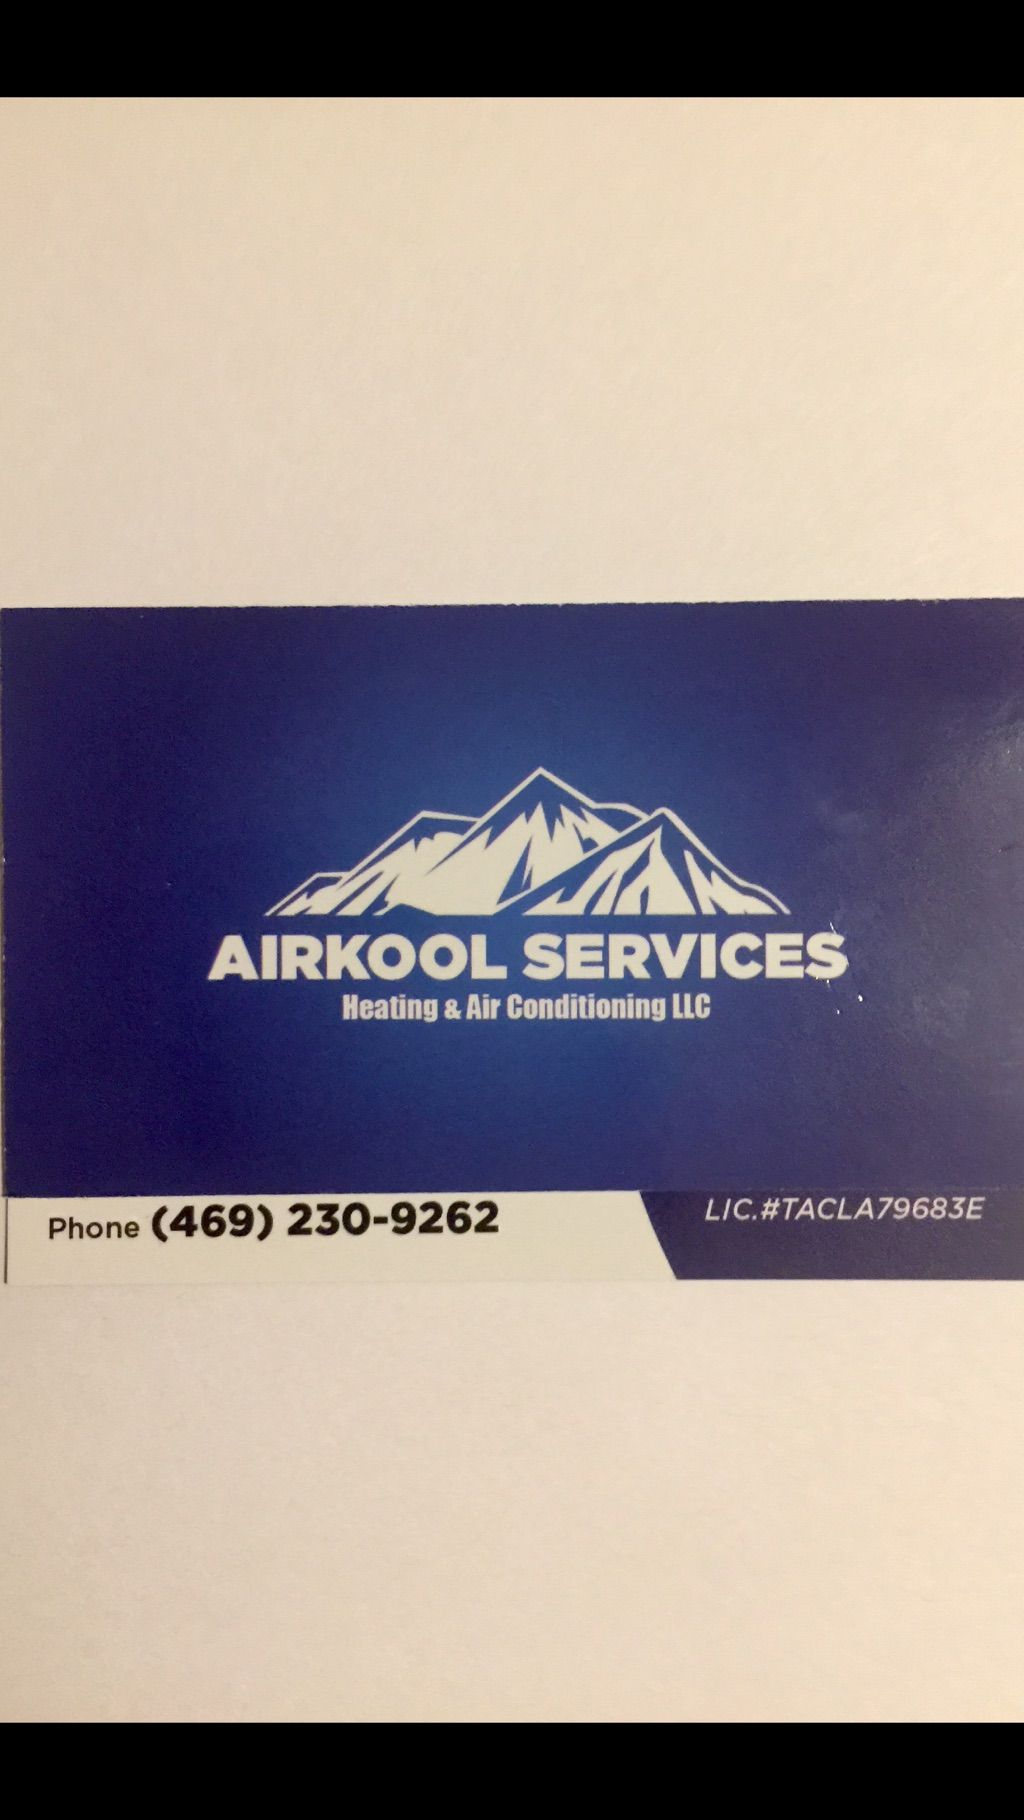 AirKool Services LLC